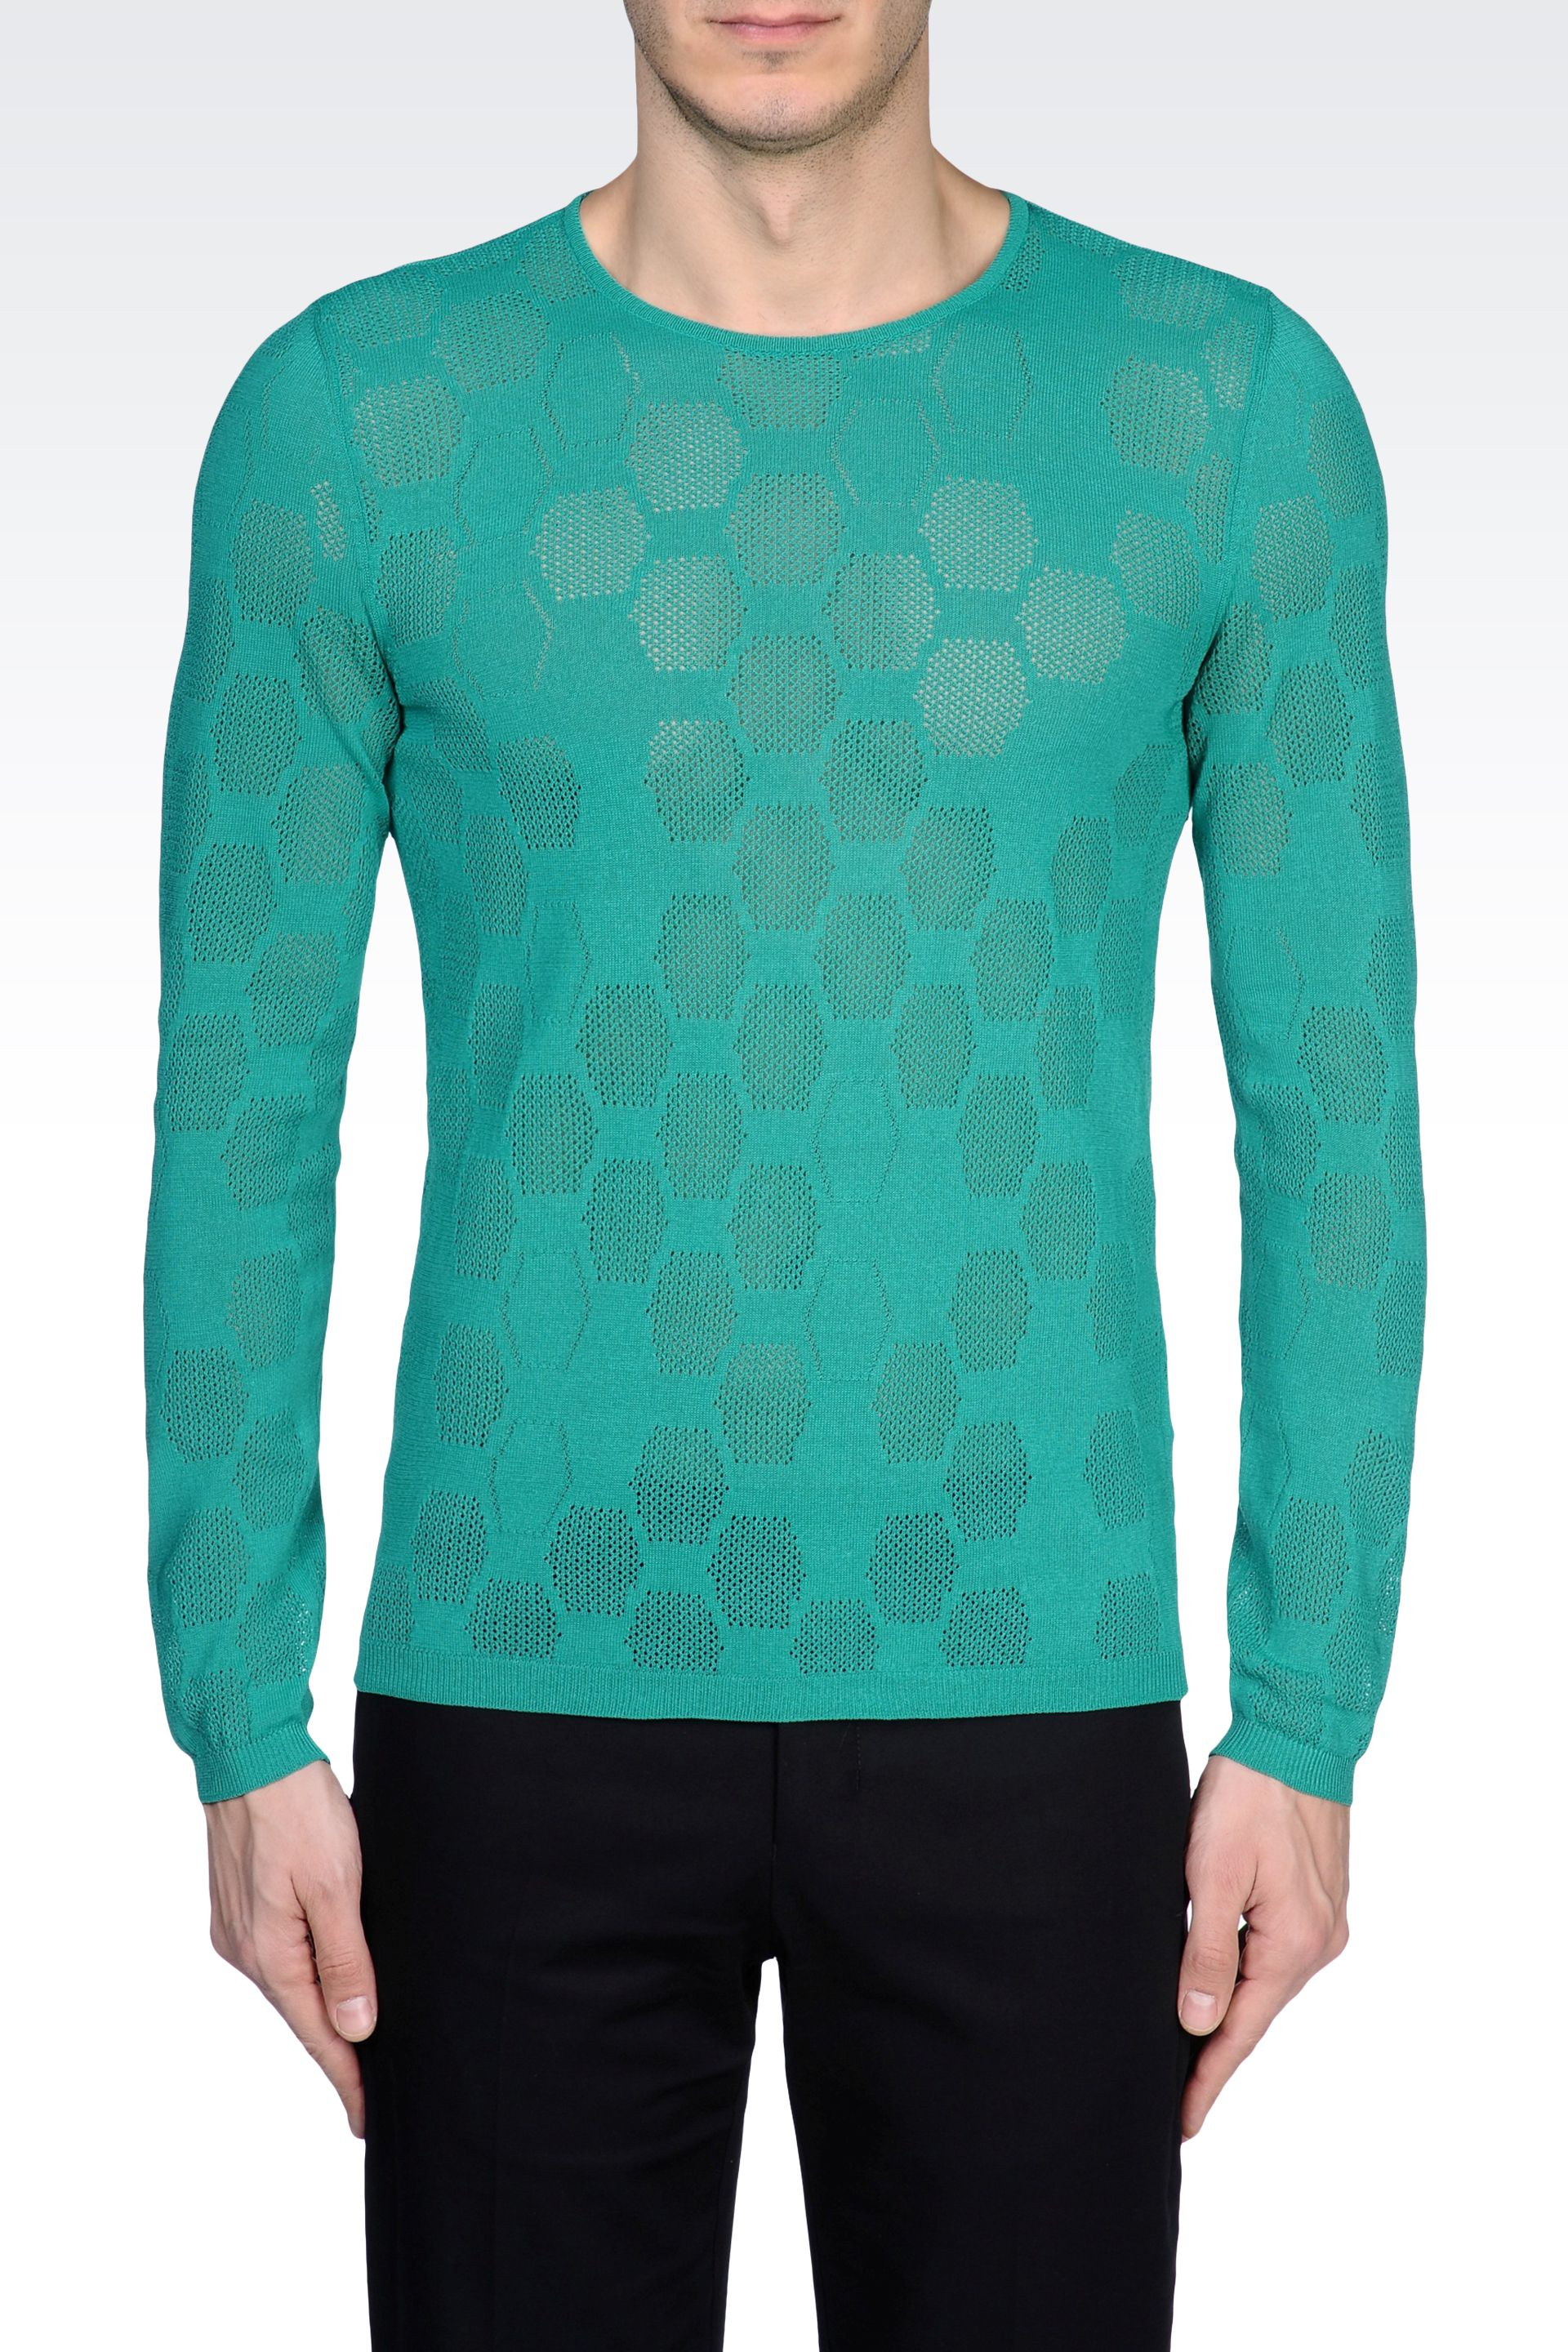 emporio armani cotton sateen sweater with hexagonal details in green for men lyst. Black Bedroom Furniture Sets. Home Design Ideas